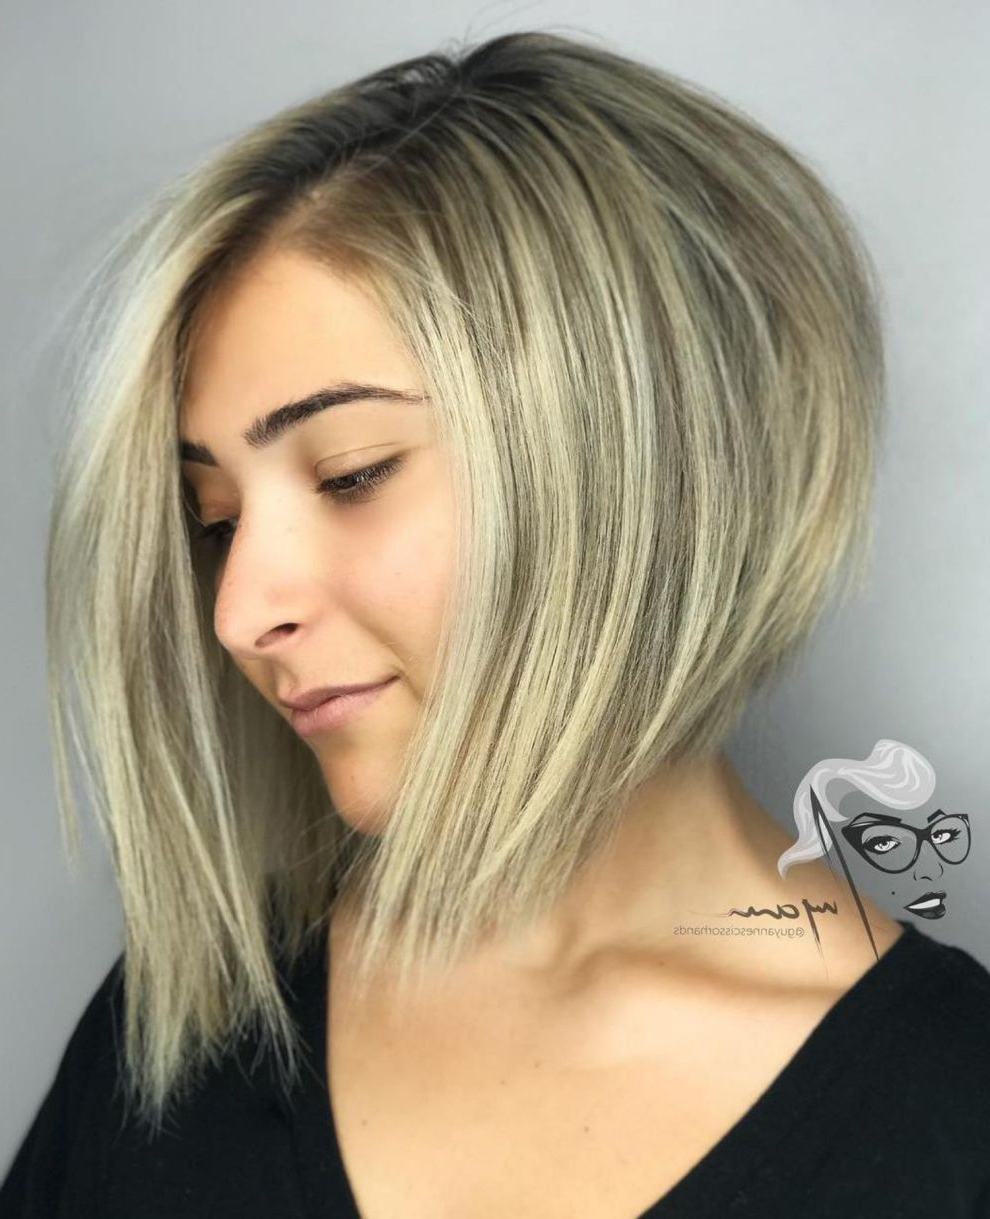 Favorite Short Rounded And Textured Bob Hairstyles For 50 Super Cute Looks With Short Hairstyles For Round Faces In (Gallery 2 of 20)